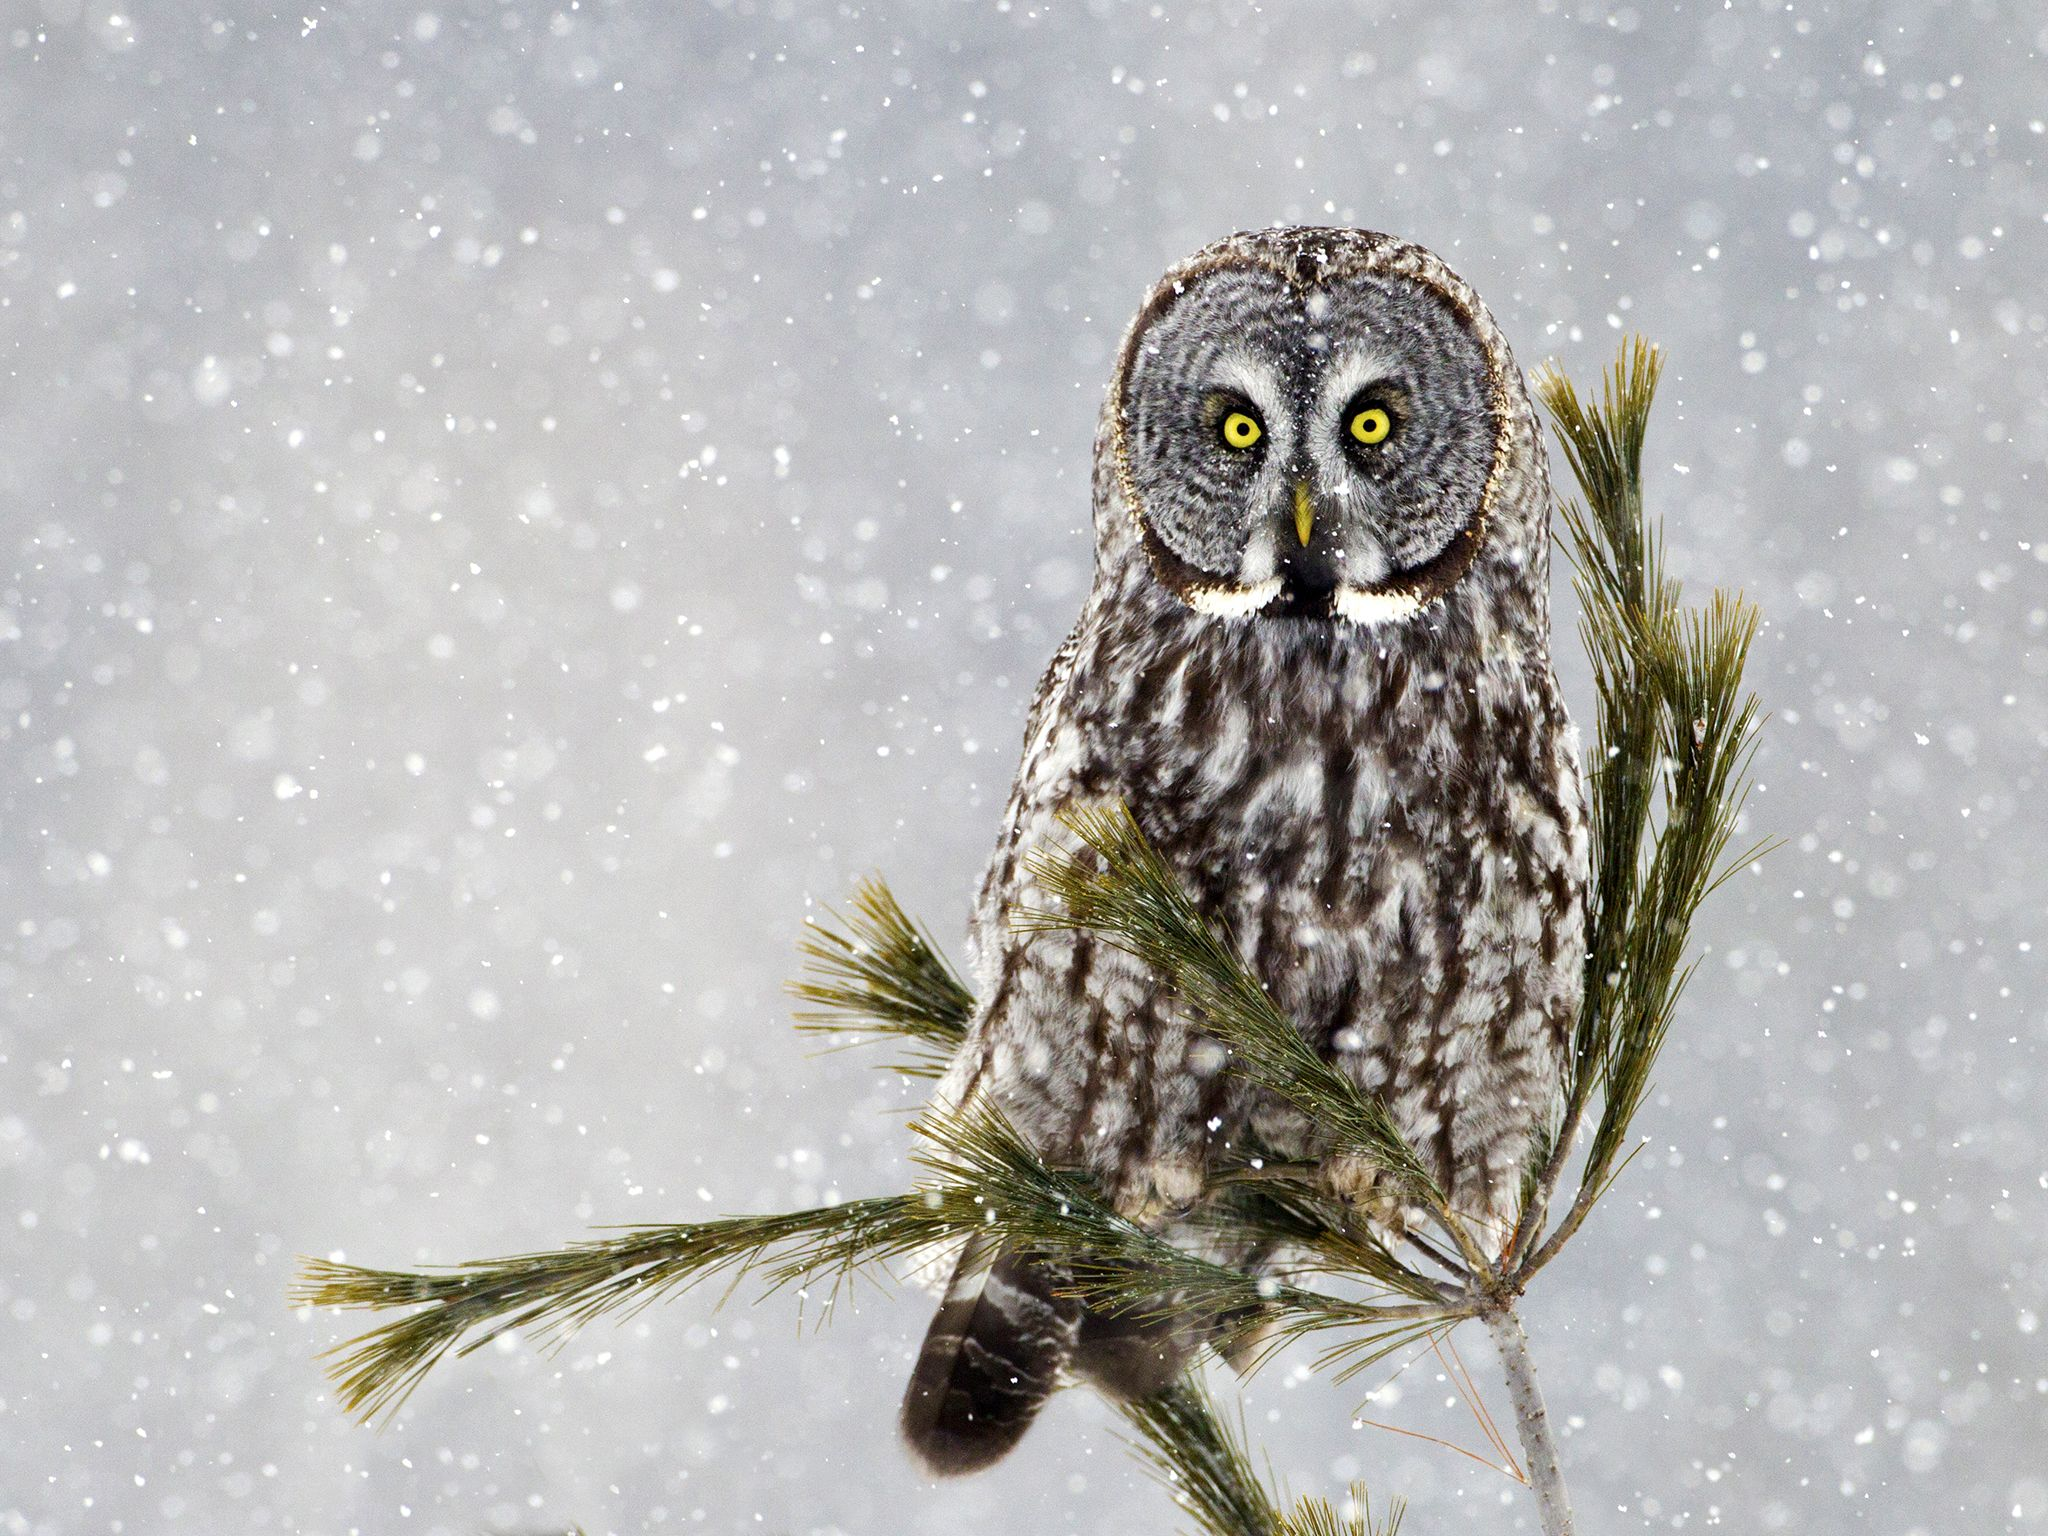 A Great Grey Owl on pine in a snow storm. This image is from Winter Wonderland. [Photo of the day - دسامبر 2015]